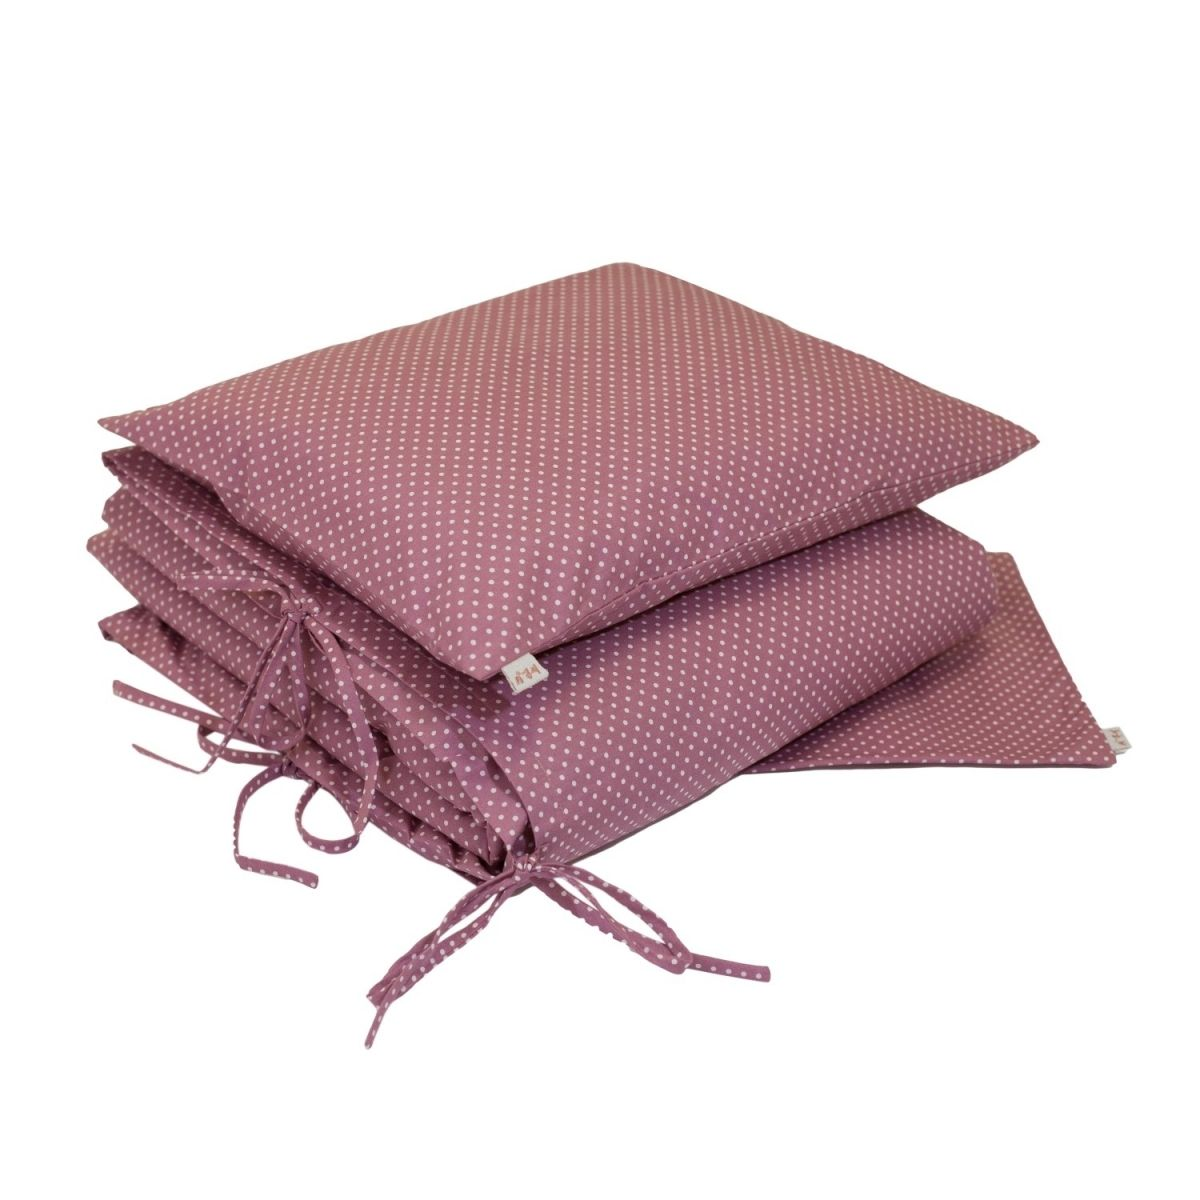 Duvet Cover Set med dots pink with cream dots - Numero 74